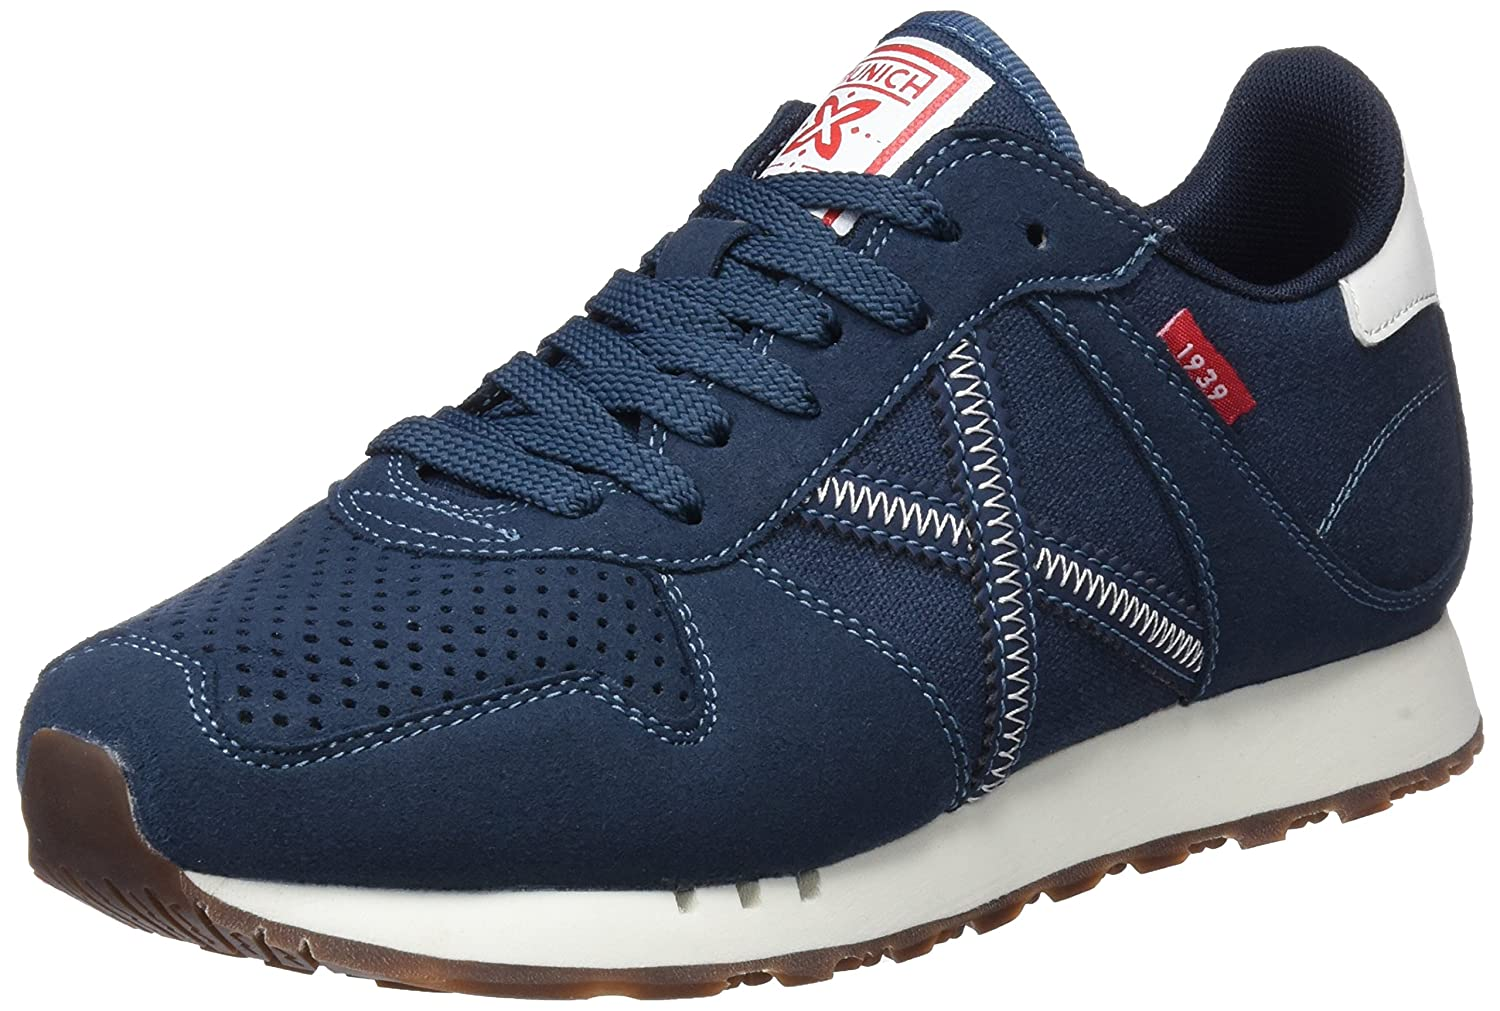 Munich Massana, Zapatillas Unisex Adulto 45 EU|Azul (245)